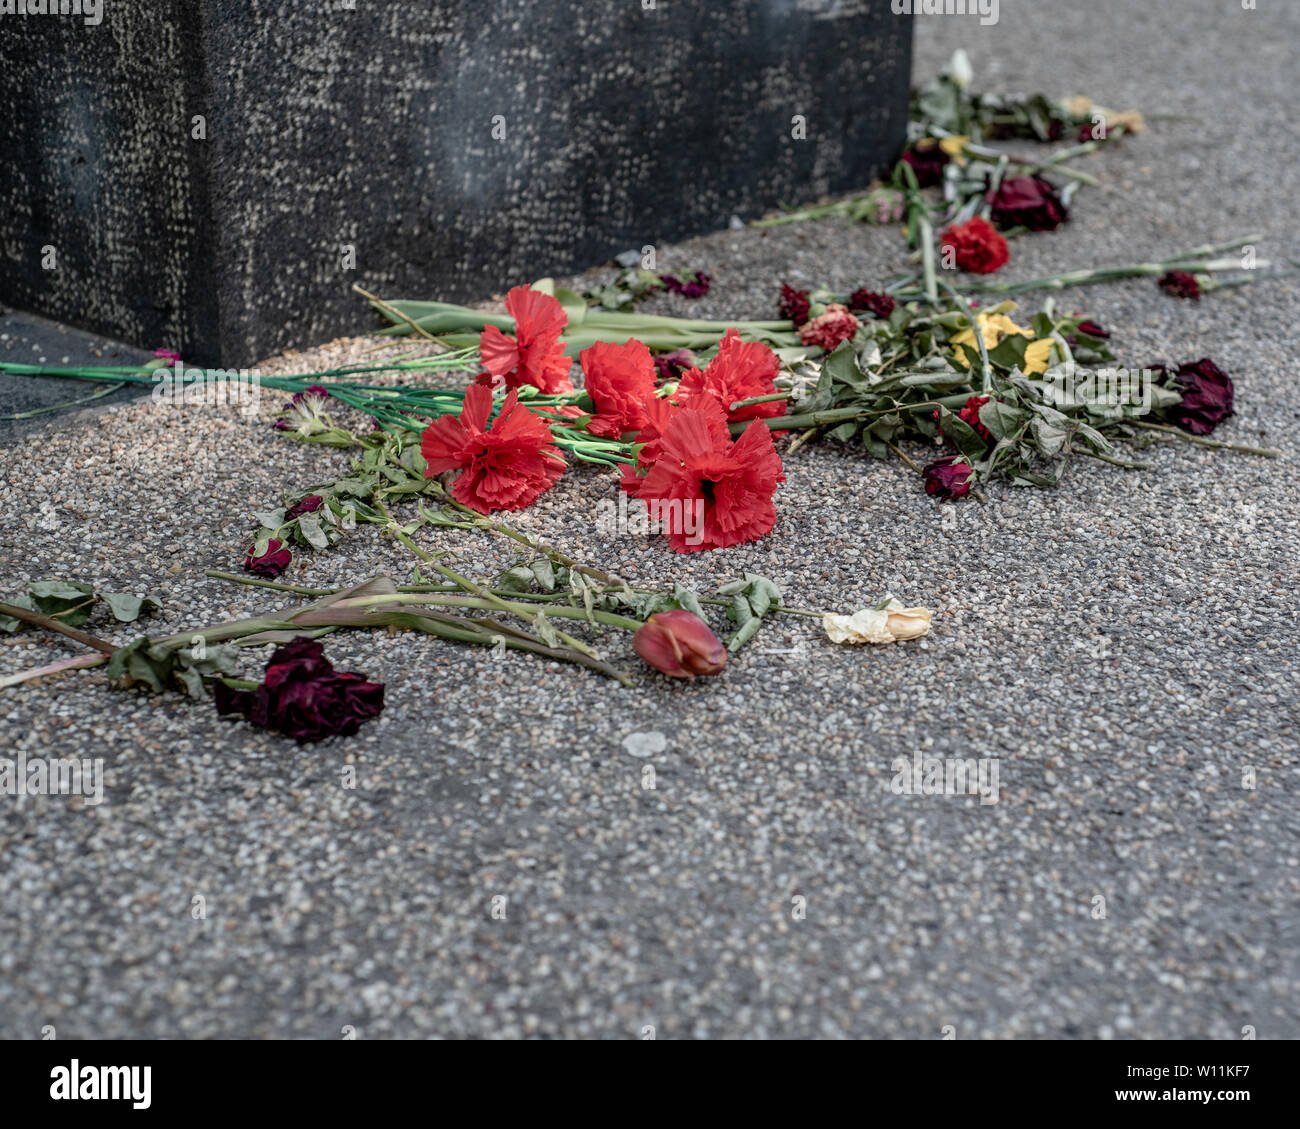 Munich, Bavaria, Germany - May 129, 2019. Eternal flame, Platz der Opfer des Nationalsozialismus, offerings to the victims of National Socialism Memor Stock Photo